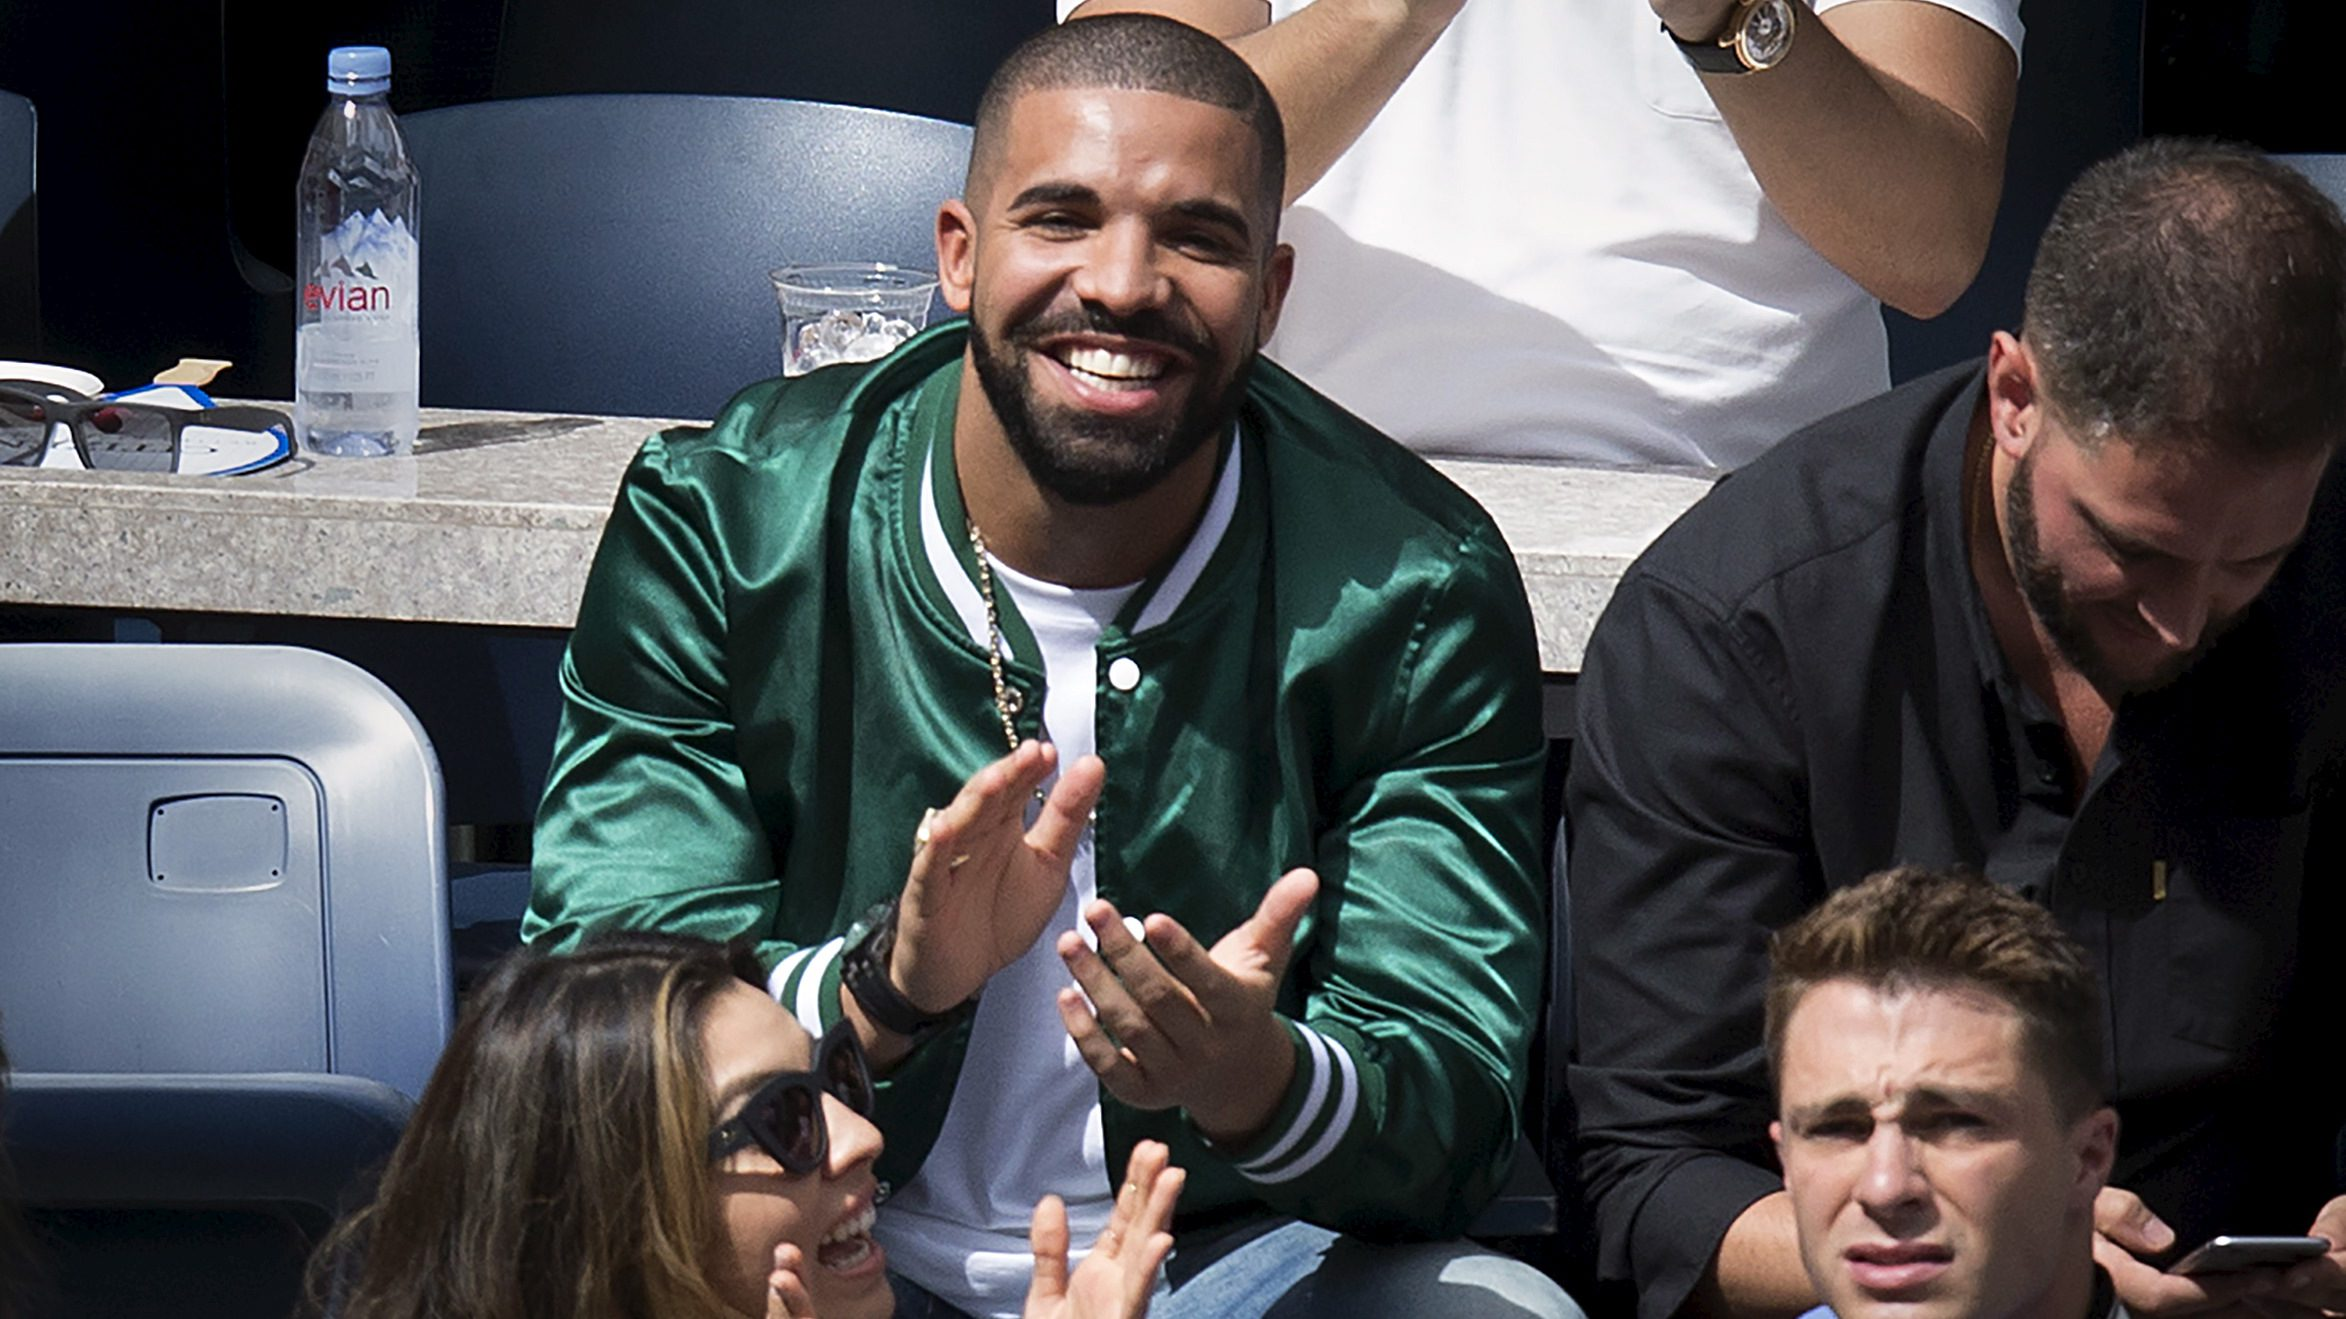 Musician Drake applauds as his image is displayed on the TV monitors during the Serena Williams, Roberta Vinci match at the U.S. Open Championships tennis tournament in New York, September 11, 2015. Picture taken September 11, 2015.